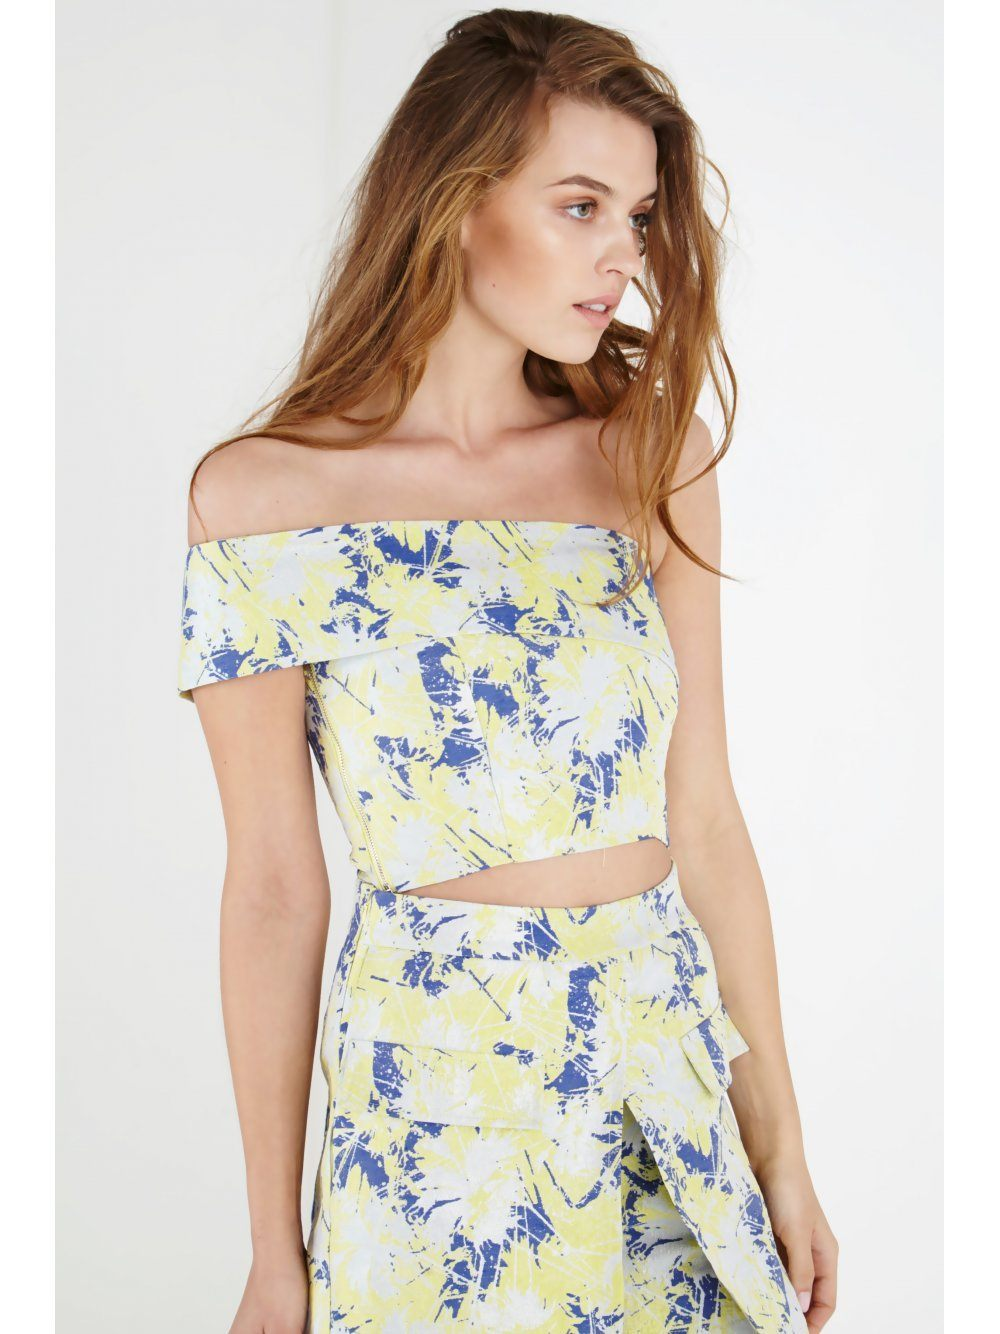 Lemon Iridescent Print Asymmetric Crop Top